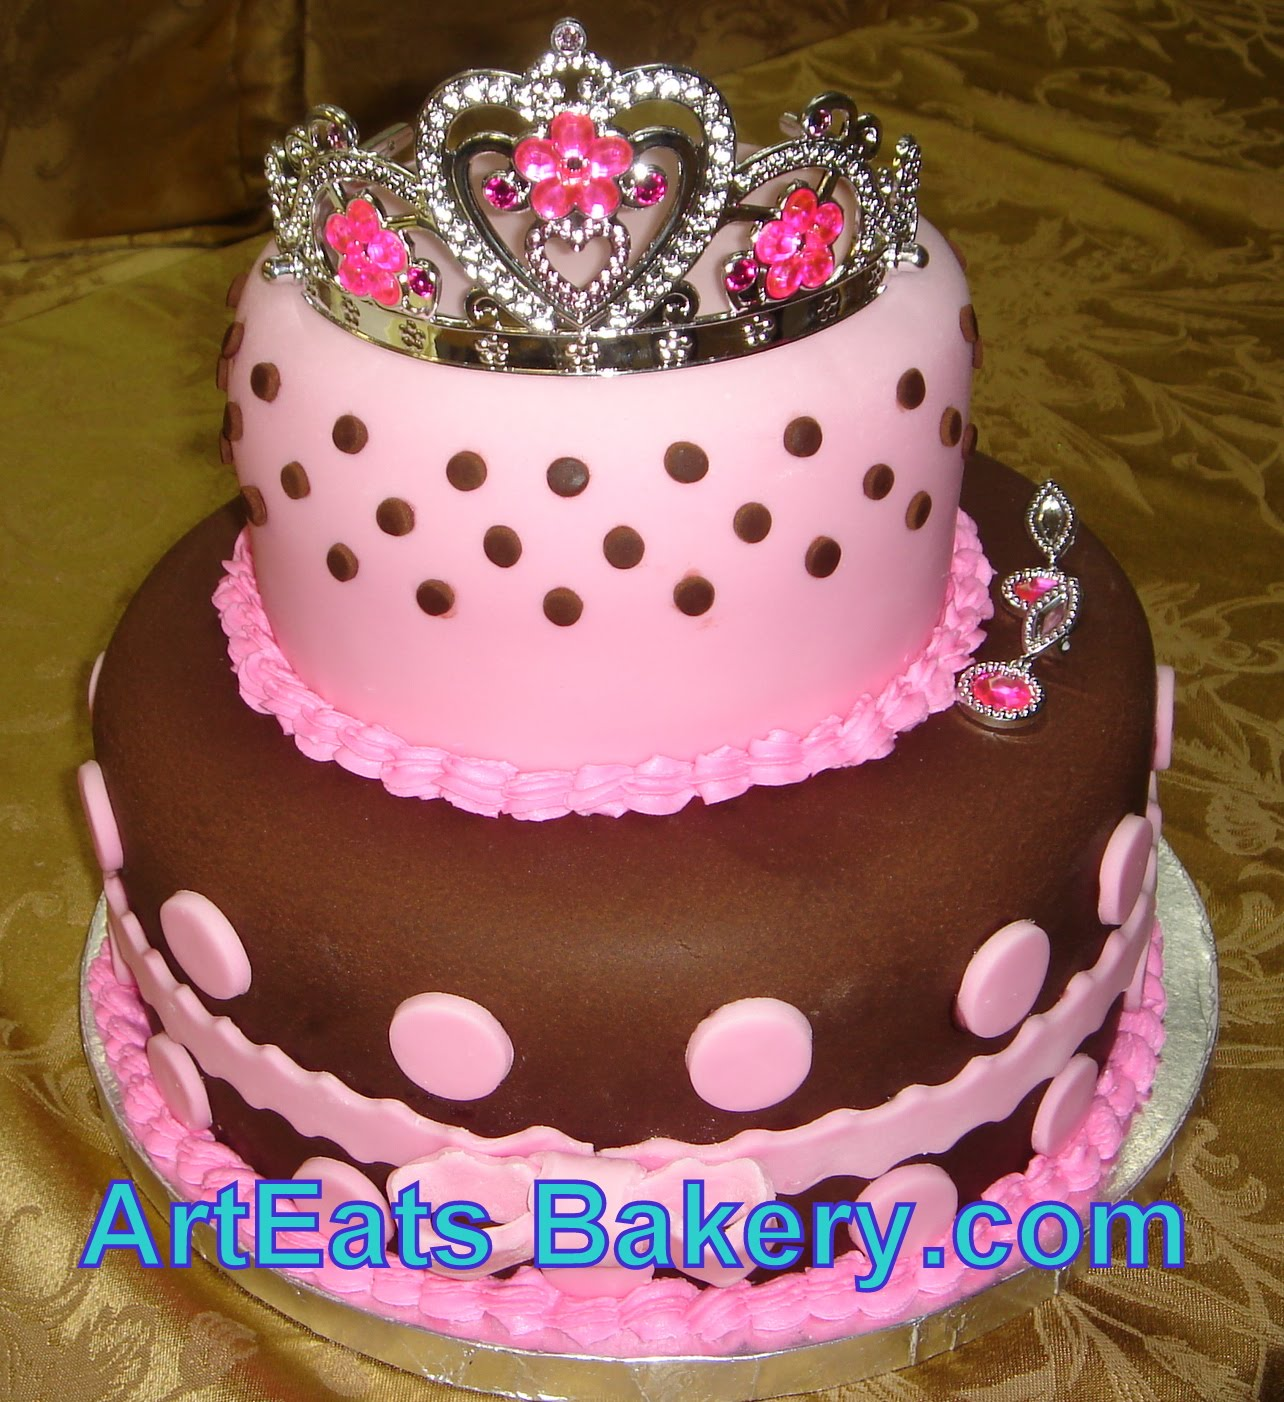 cake birthday kids fondant buttercream princess castle Art Eats Bakery